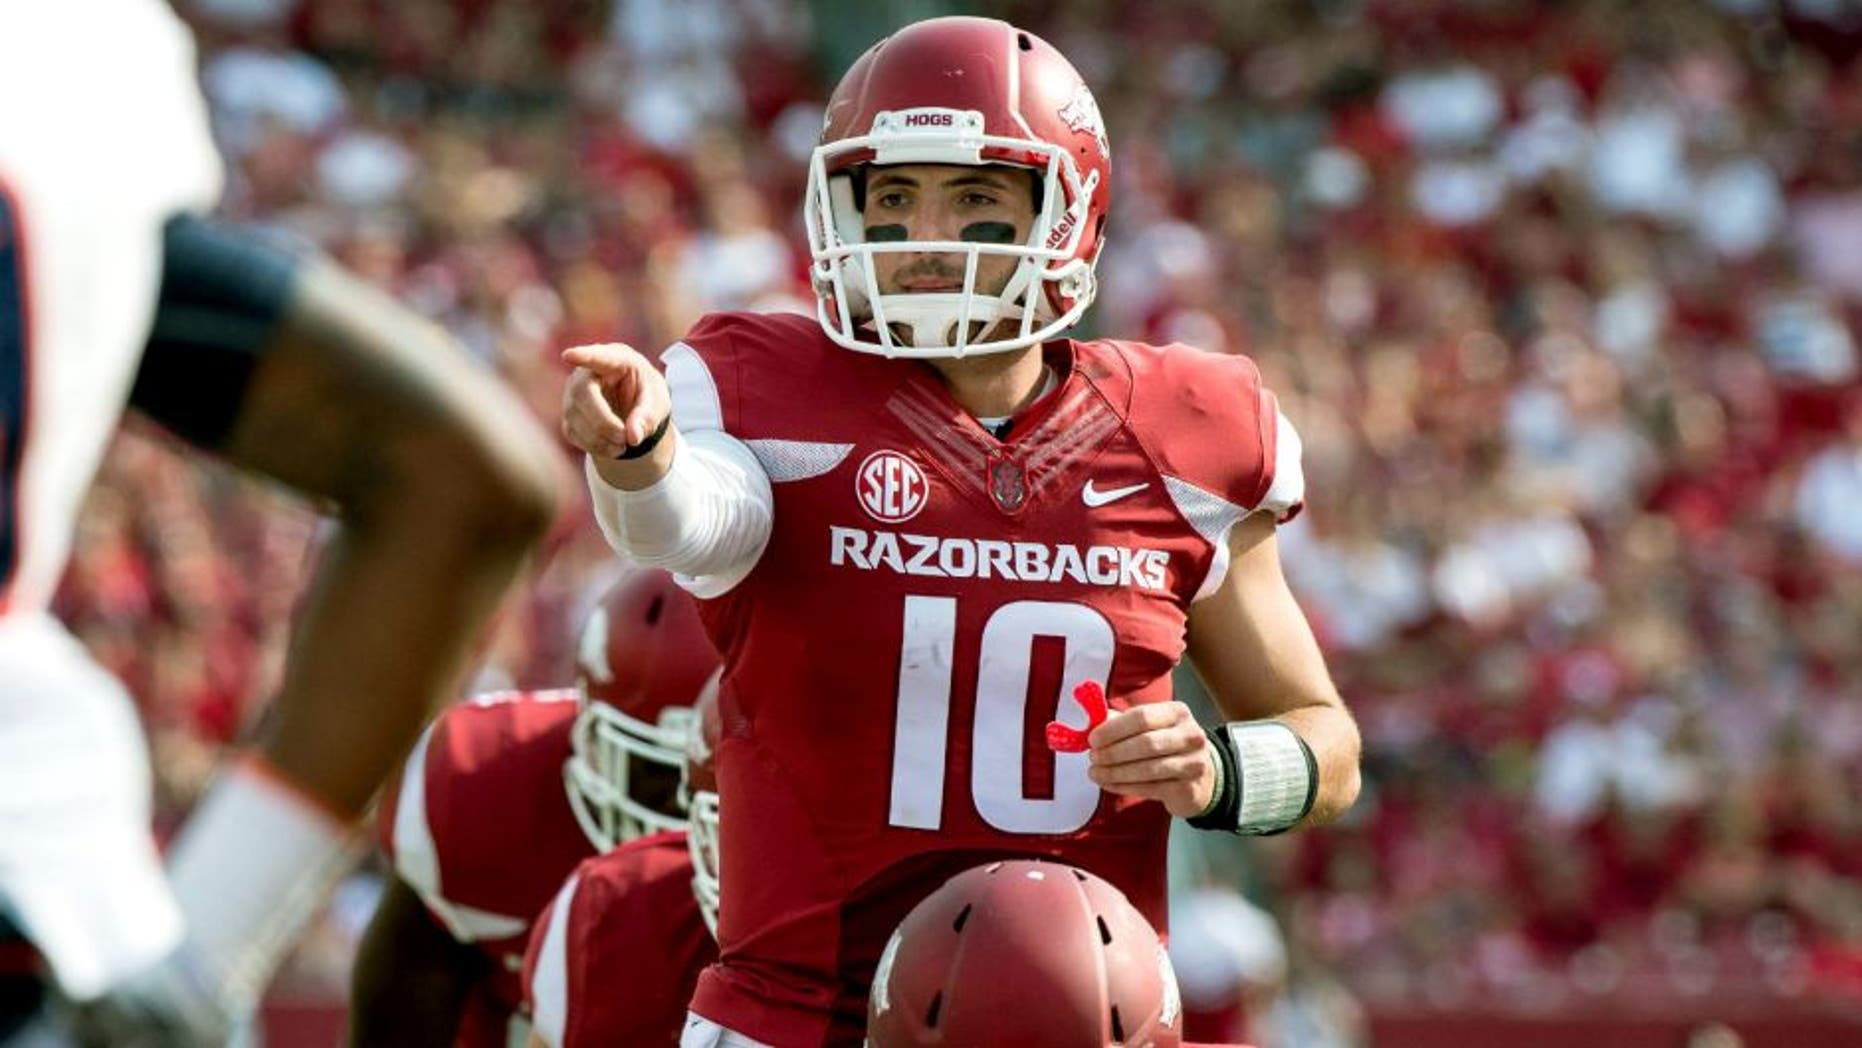 Sep 5, 2015; Fayetteville, AR, USA; Arkansas Razorbacks quarterback Brandon Allen (10) points to UTEP Miners defensive back Michael Lewis (39) during the second half at Donald W. Reynolds Razorback Stadium. The Razorbacks defeat the Miners 48-13. Mandatory Credit: Jerome Miron-USA TODAY Sports